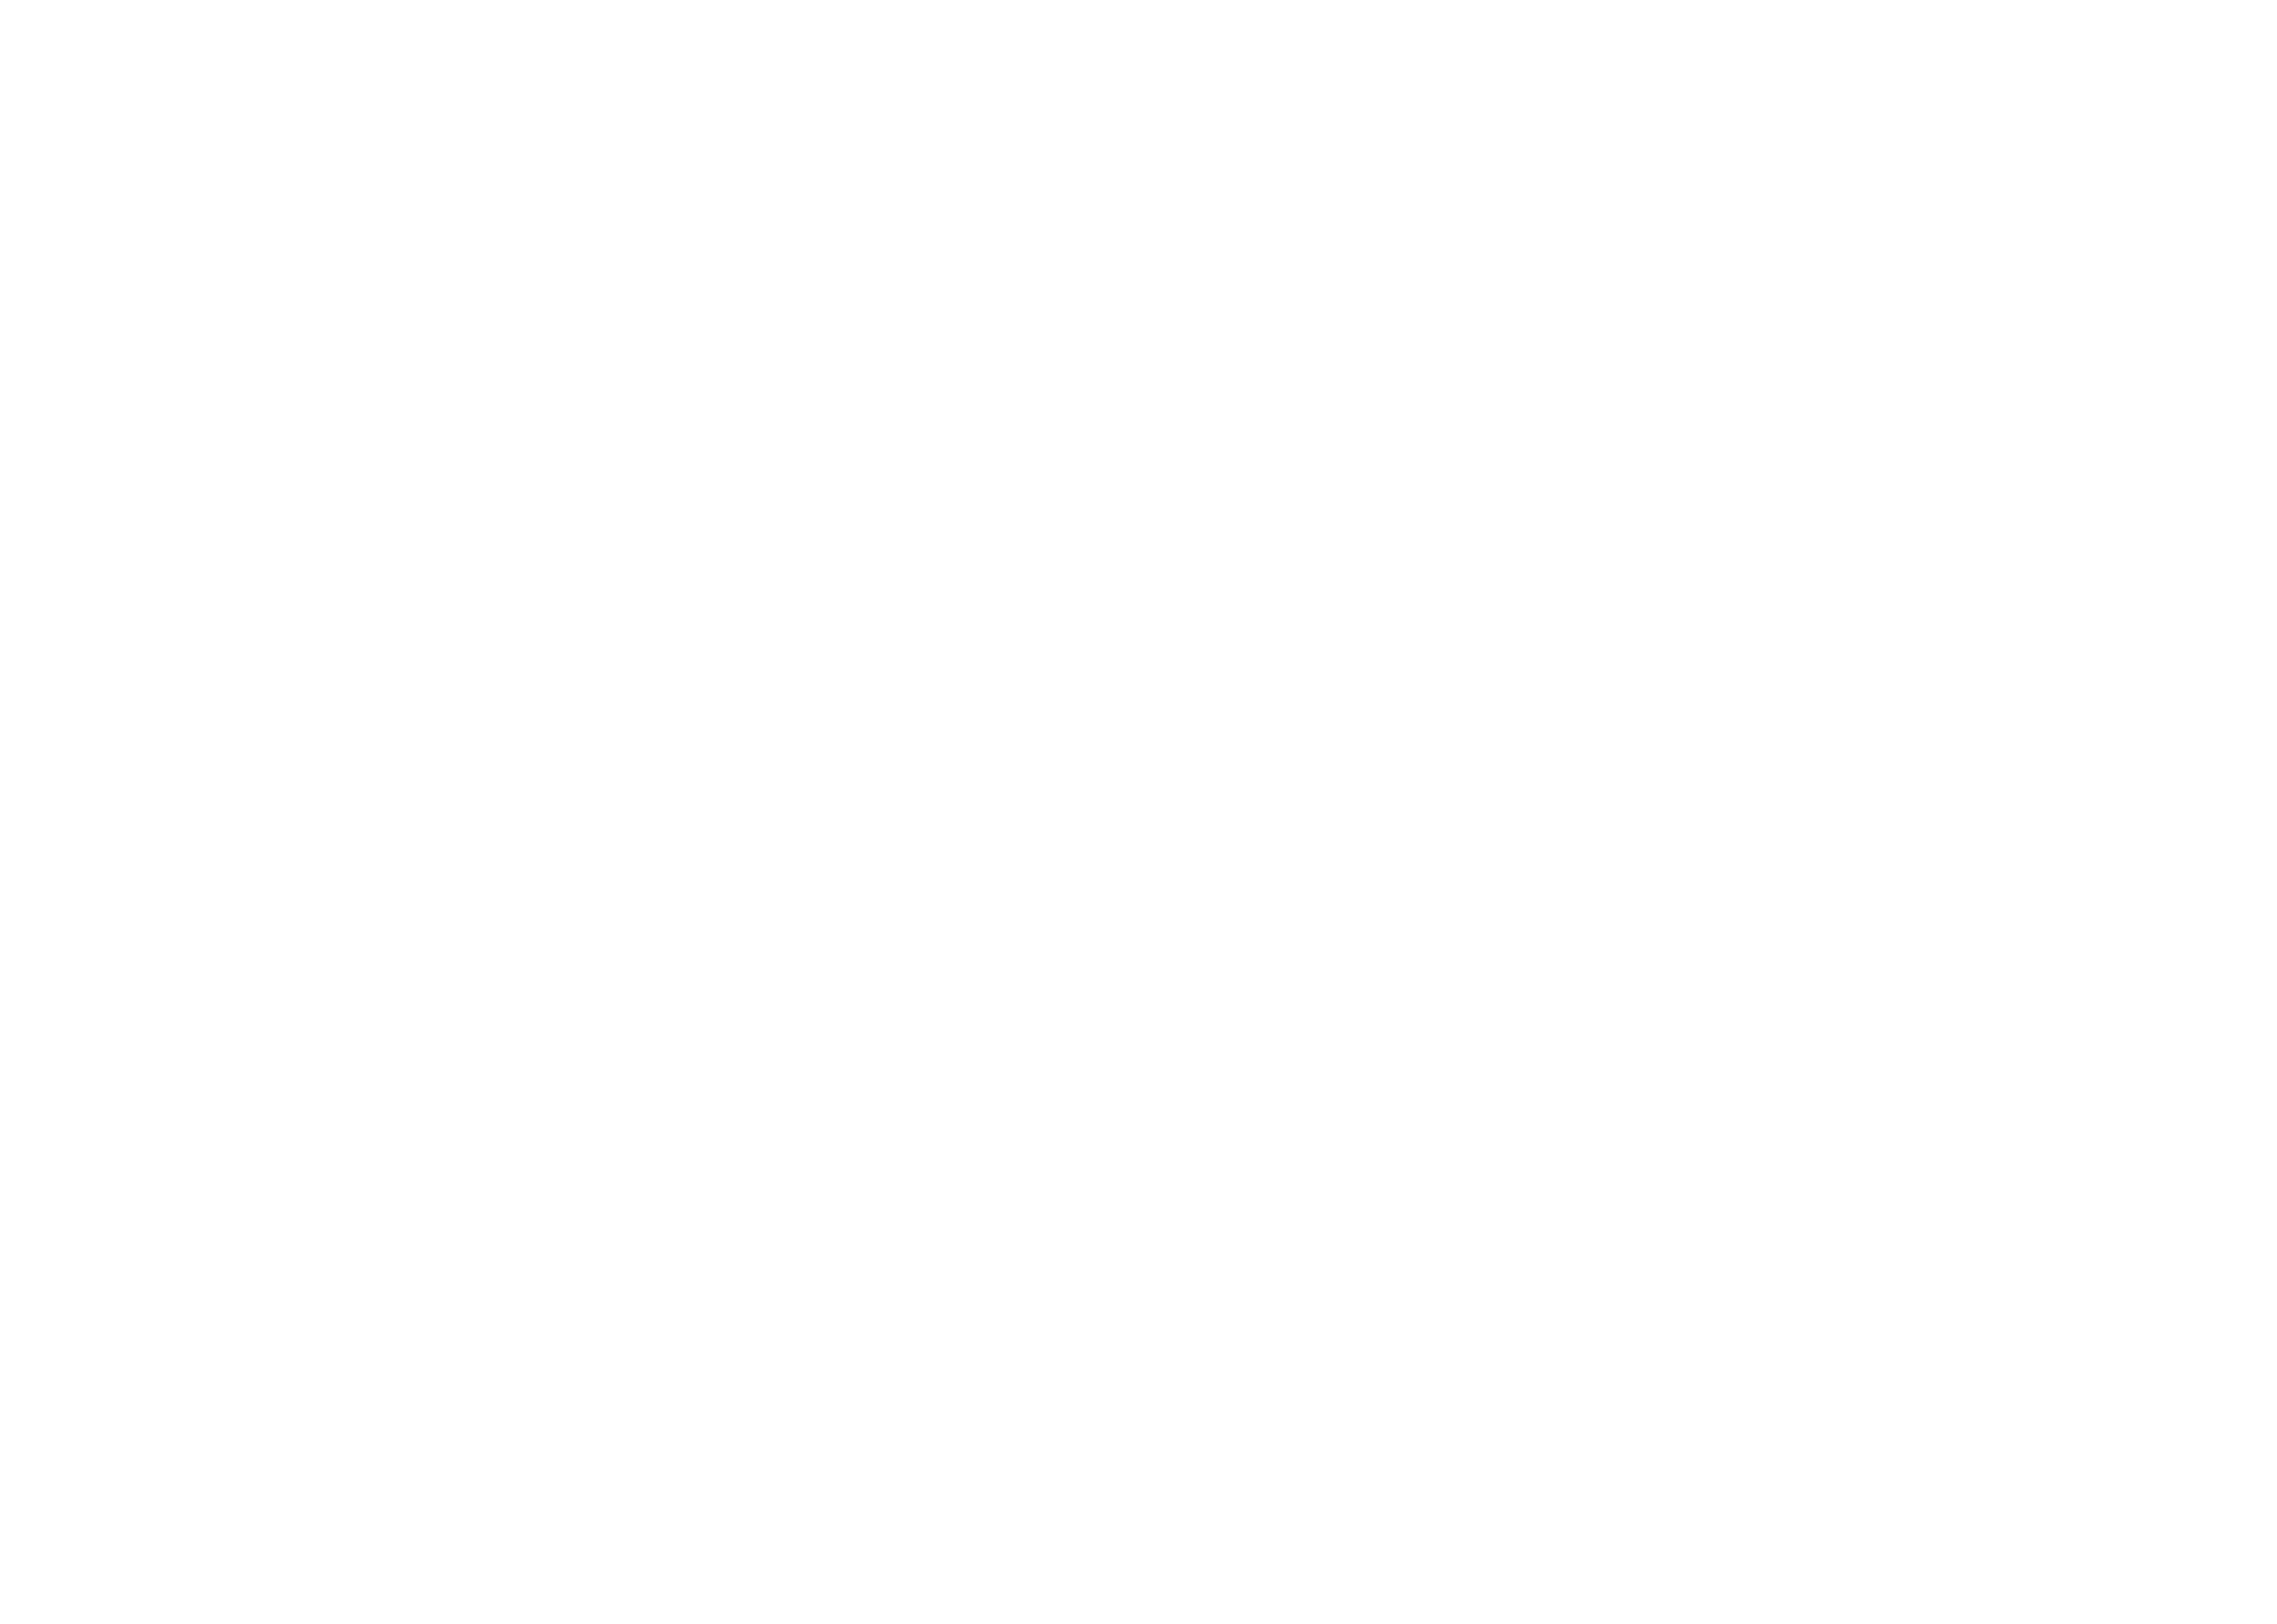 Candid Turtle